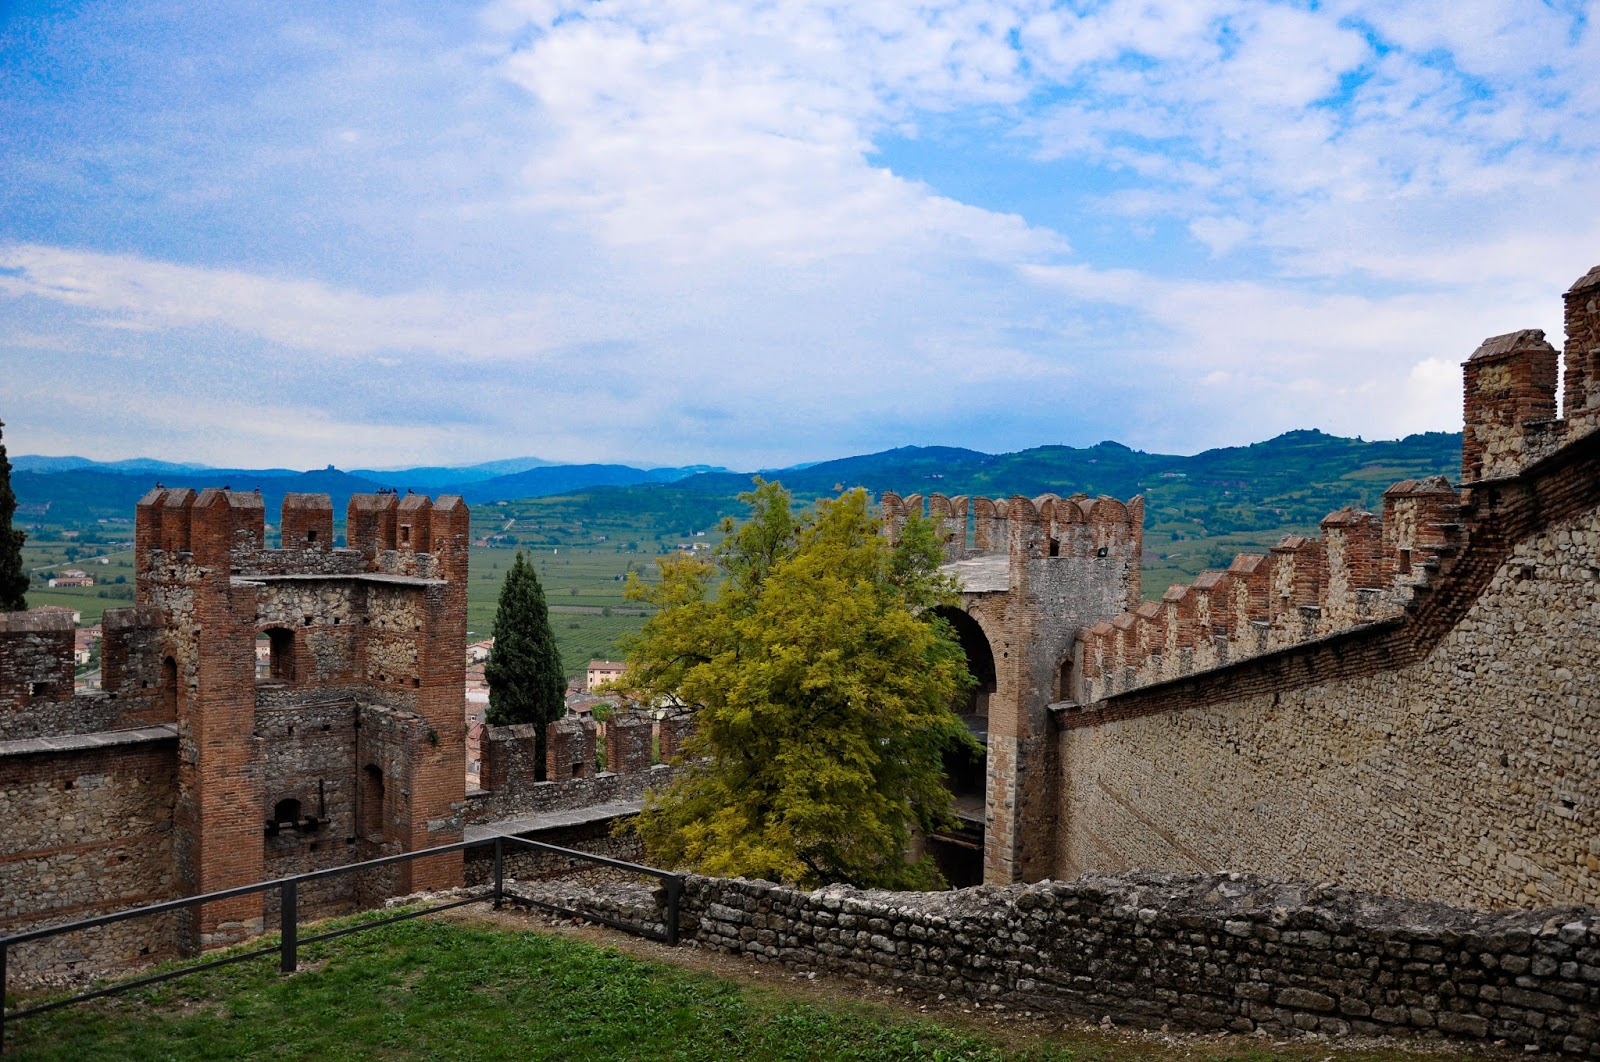 Veneto seen from Soave Castle, Soave, Veneto, Italy